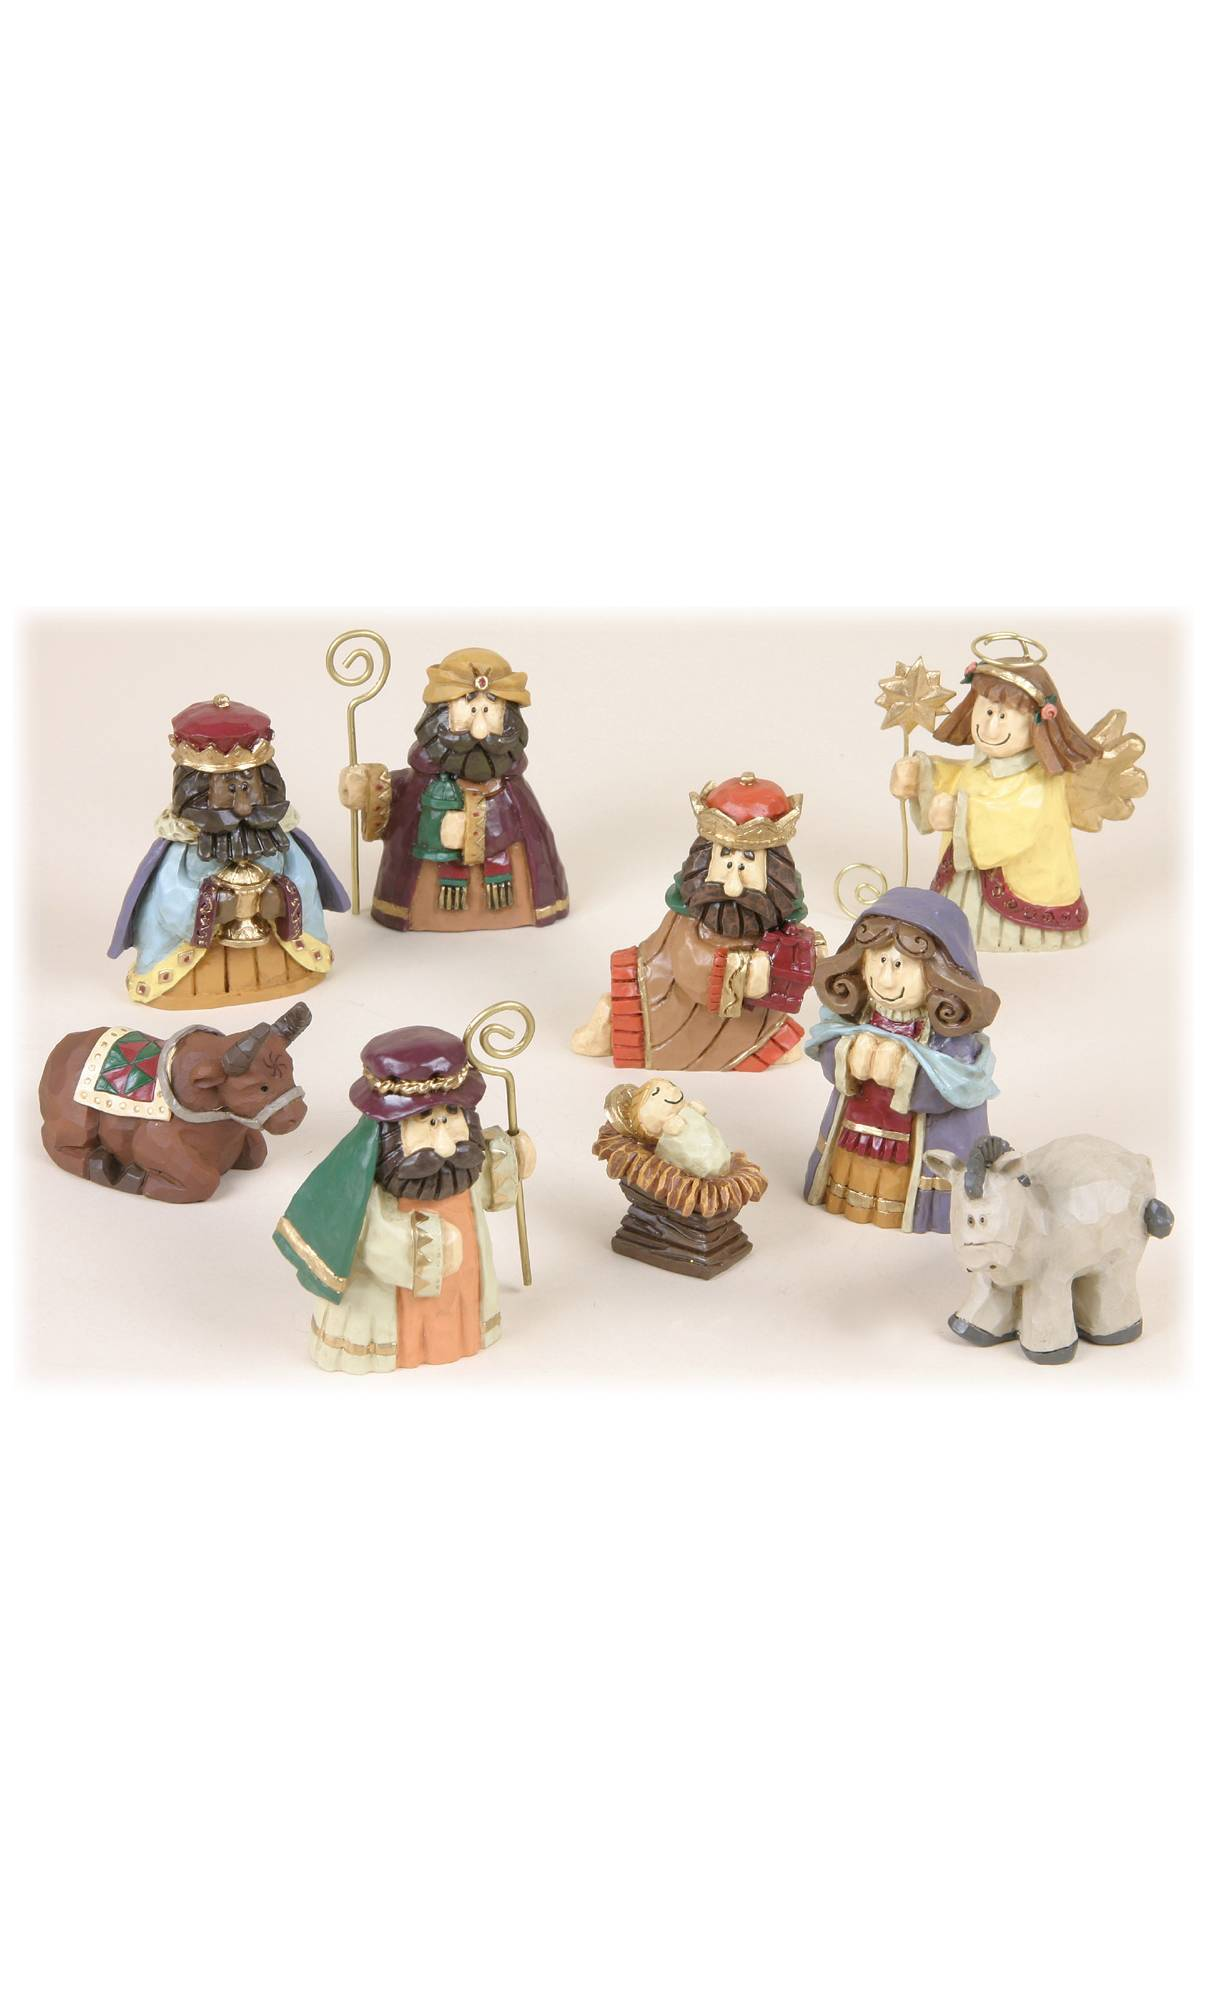 decoration de noel figurine creche vente par 9 voir les. Black Bedroom Furniture Sets. Home Design Ideas